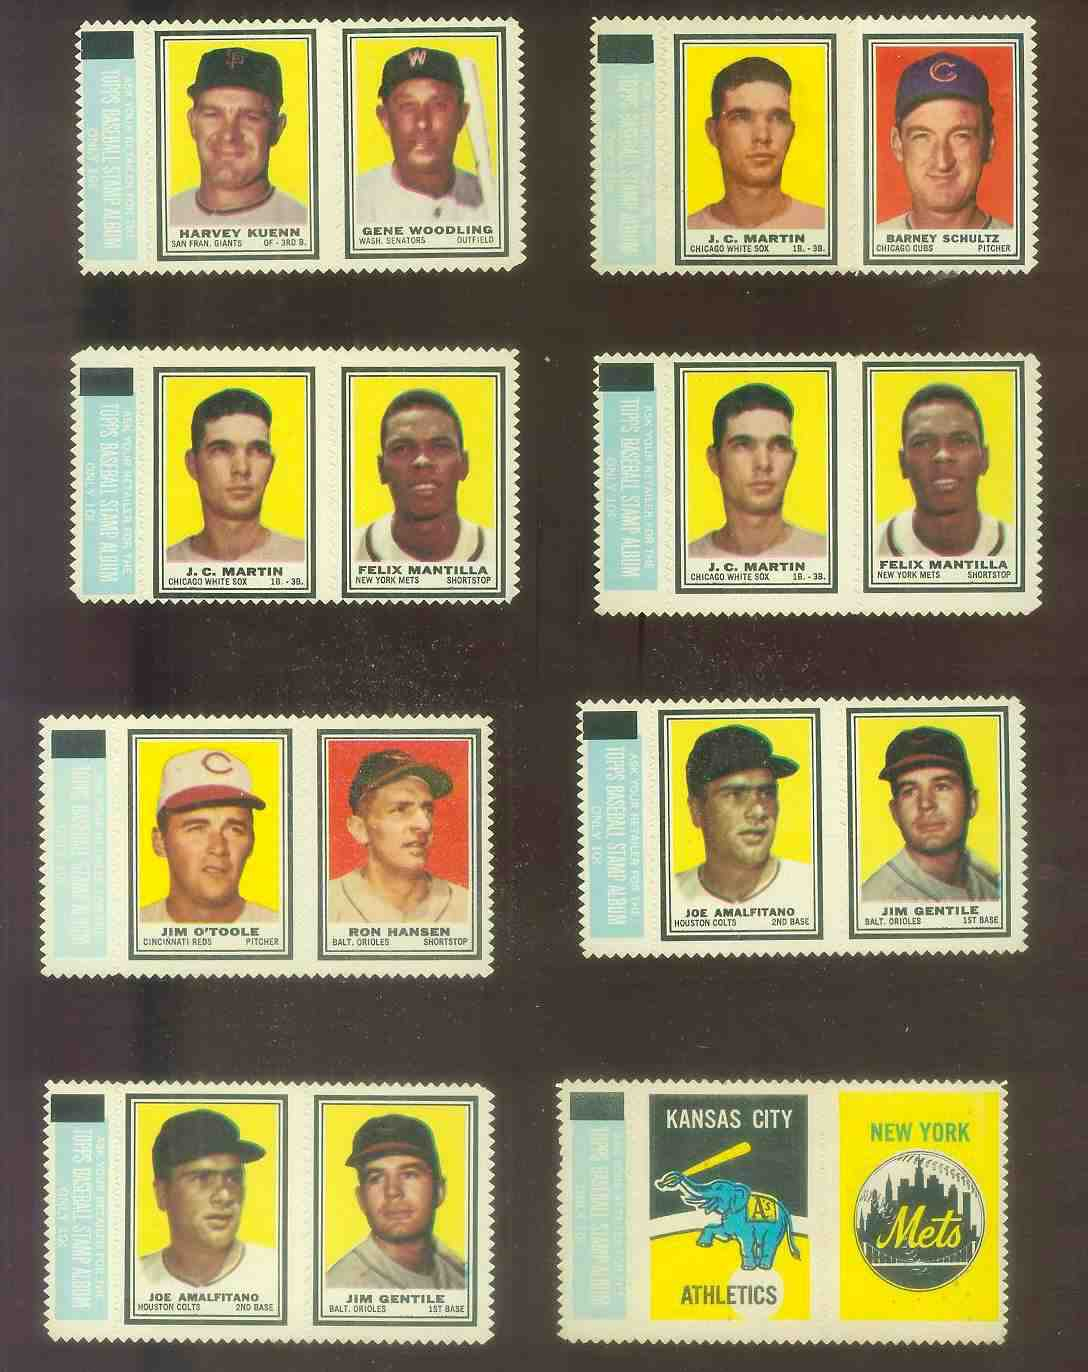 Harvey Kueen/Gene Woodling - 1962 Topps STAMP PANEL with TAB !!! Baseball cards value